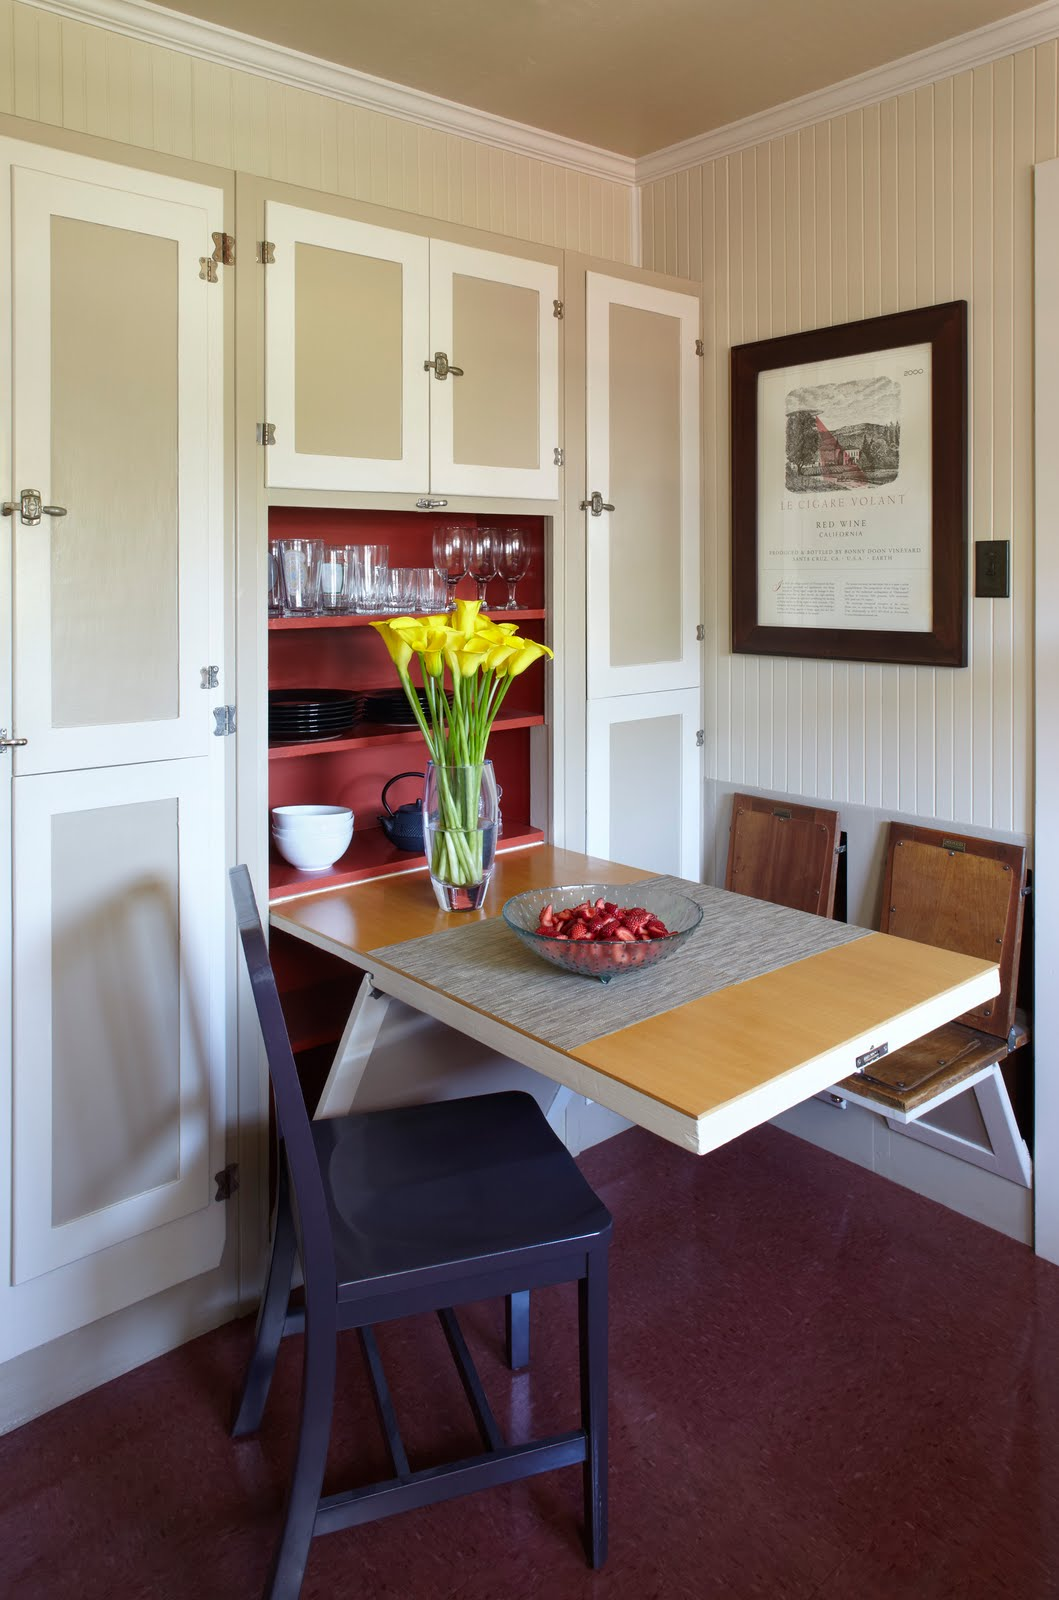 Relaxshacks In Laws Outlaws And Granny Flats By